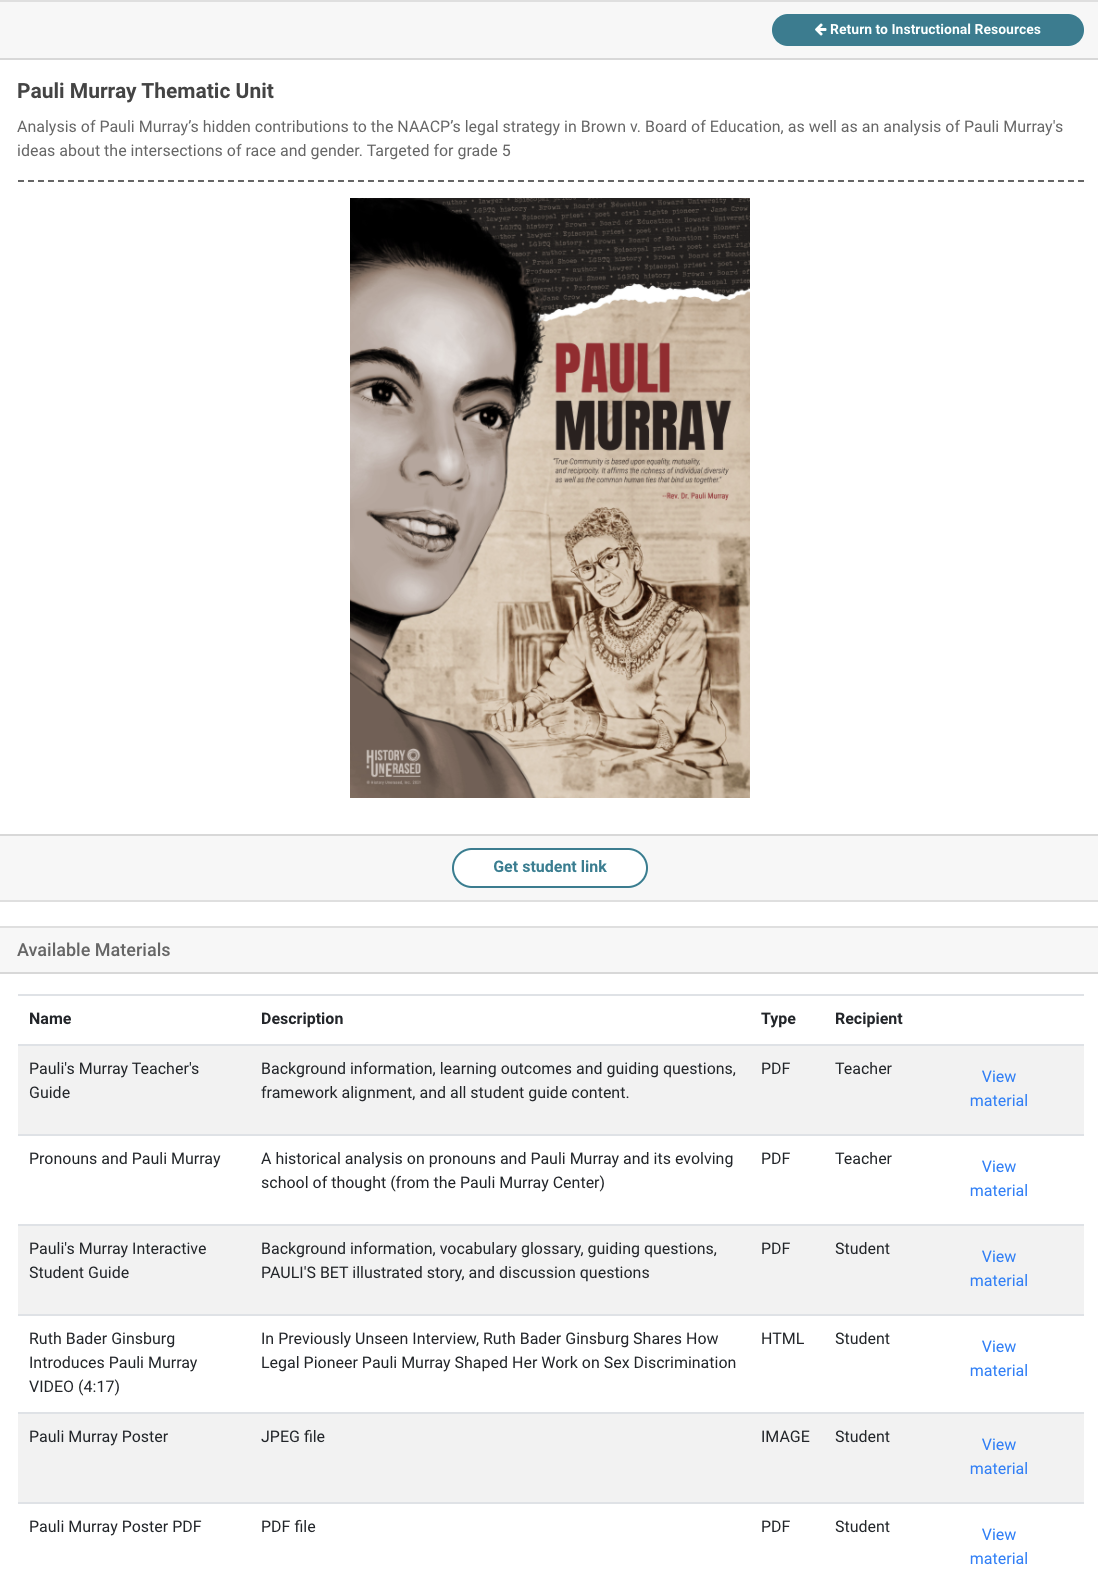 pauli murray instructional resource full page teacher view image